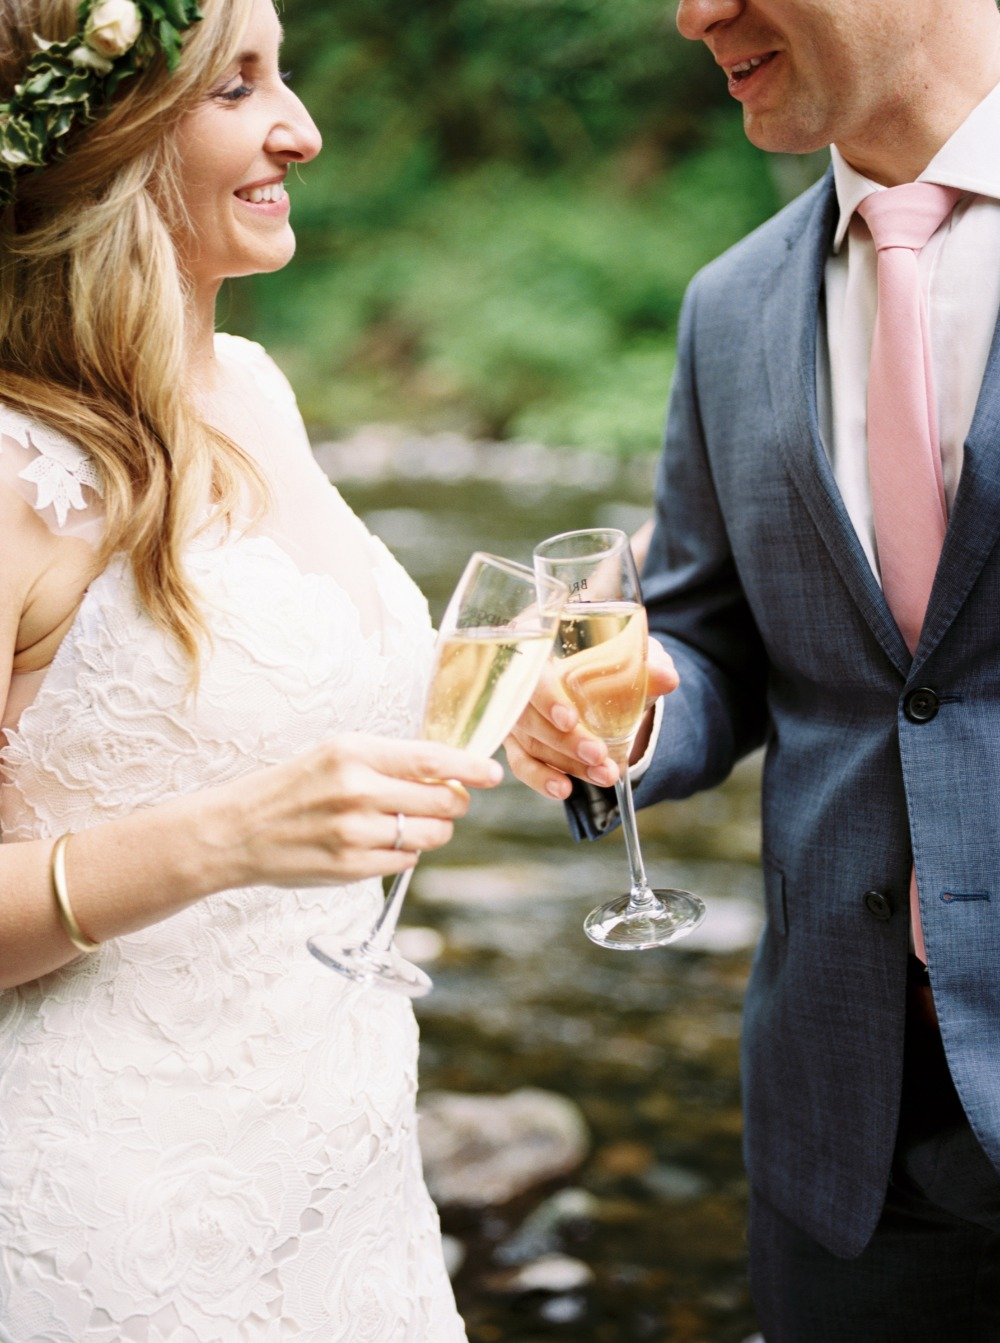 Champagne toast elopement idea